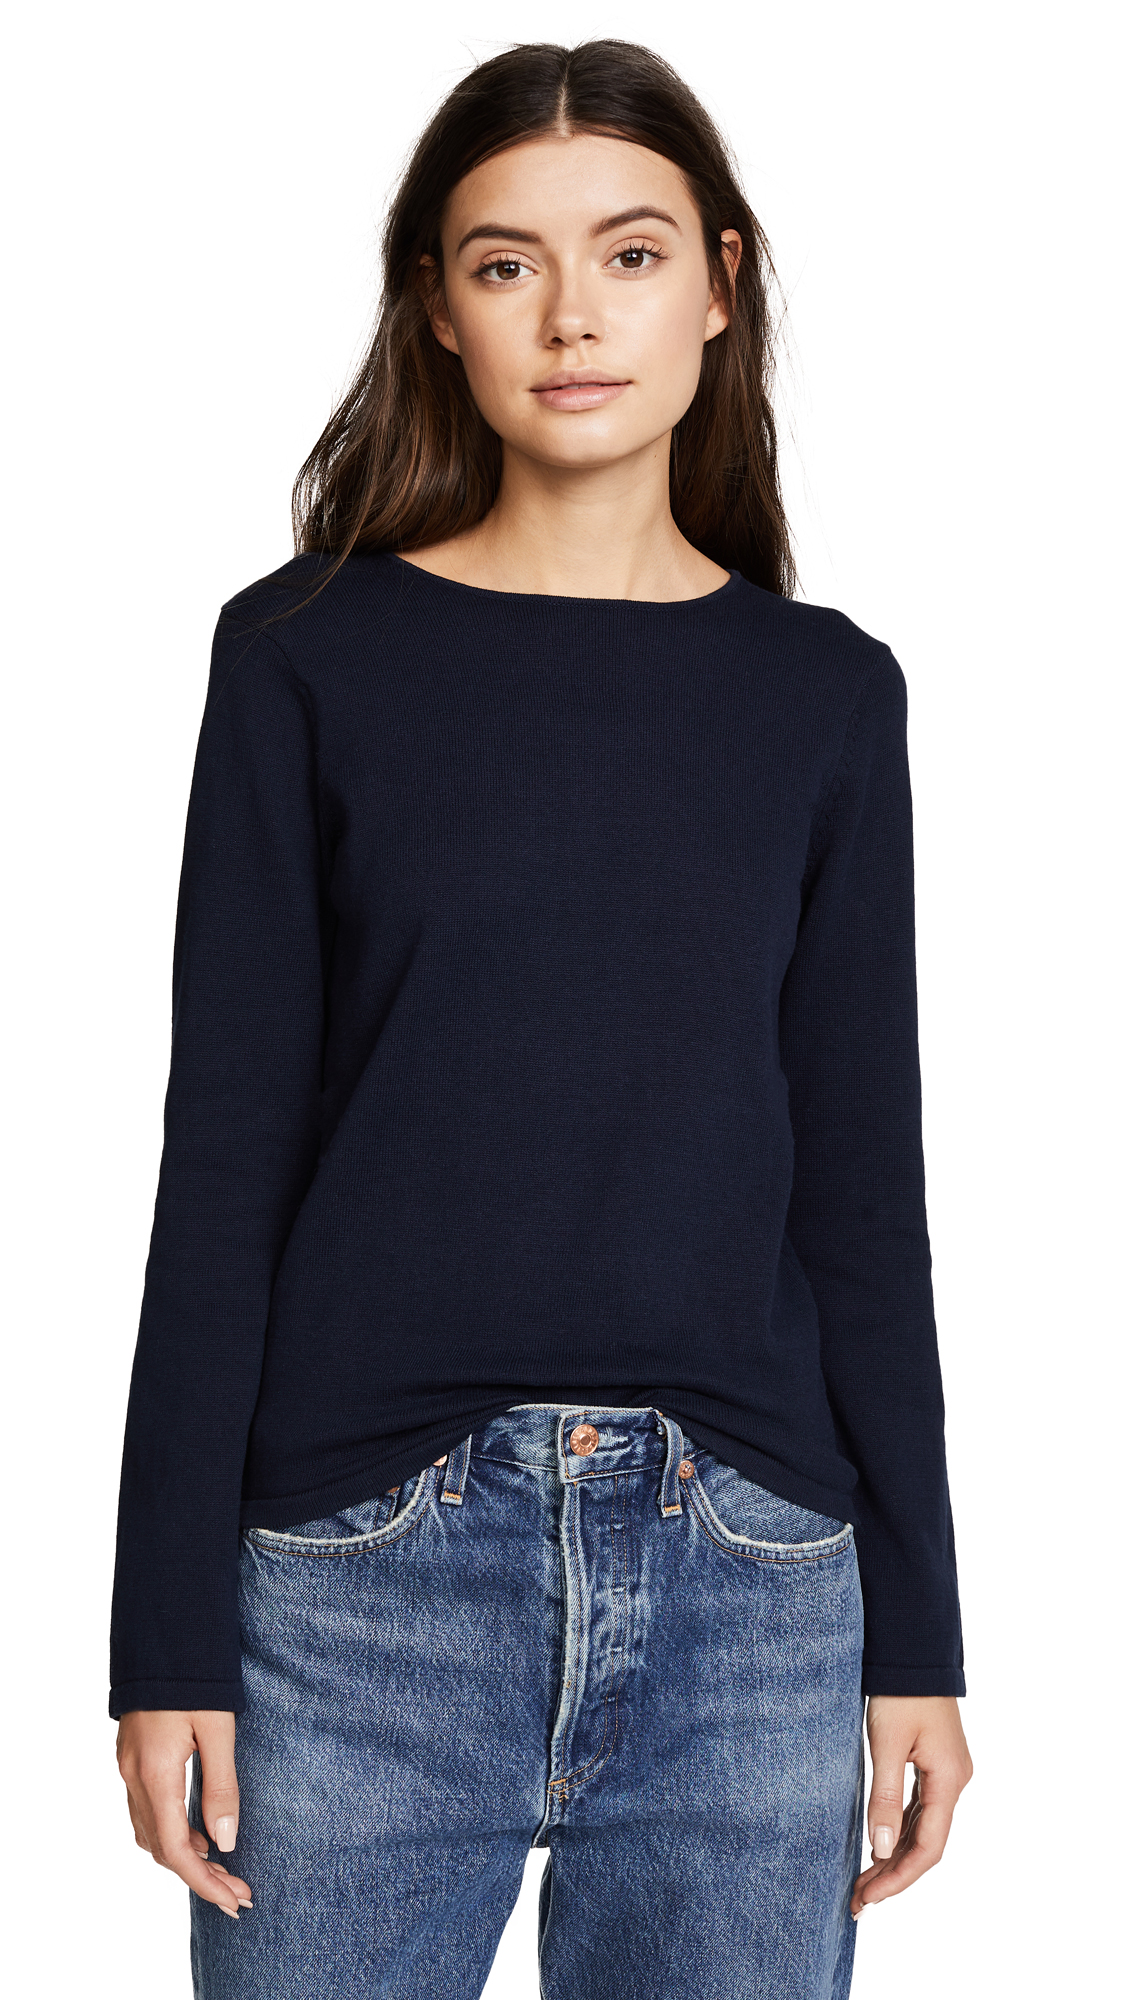 ONE by Heart Sweater